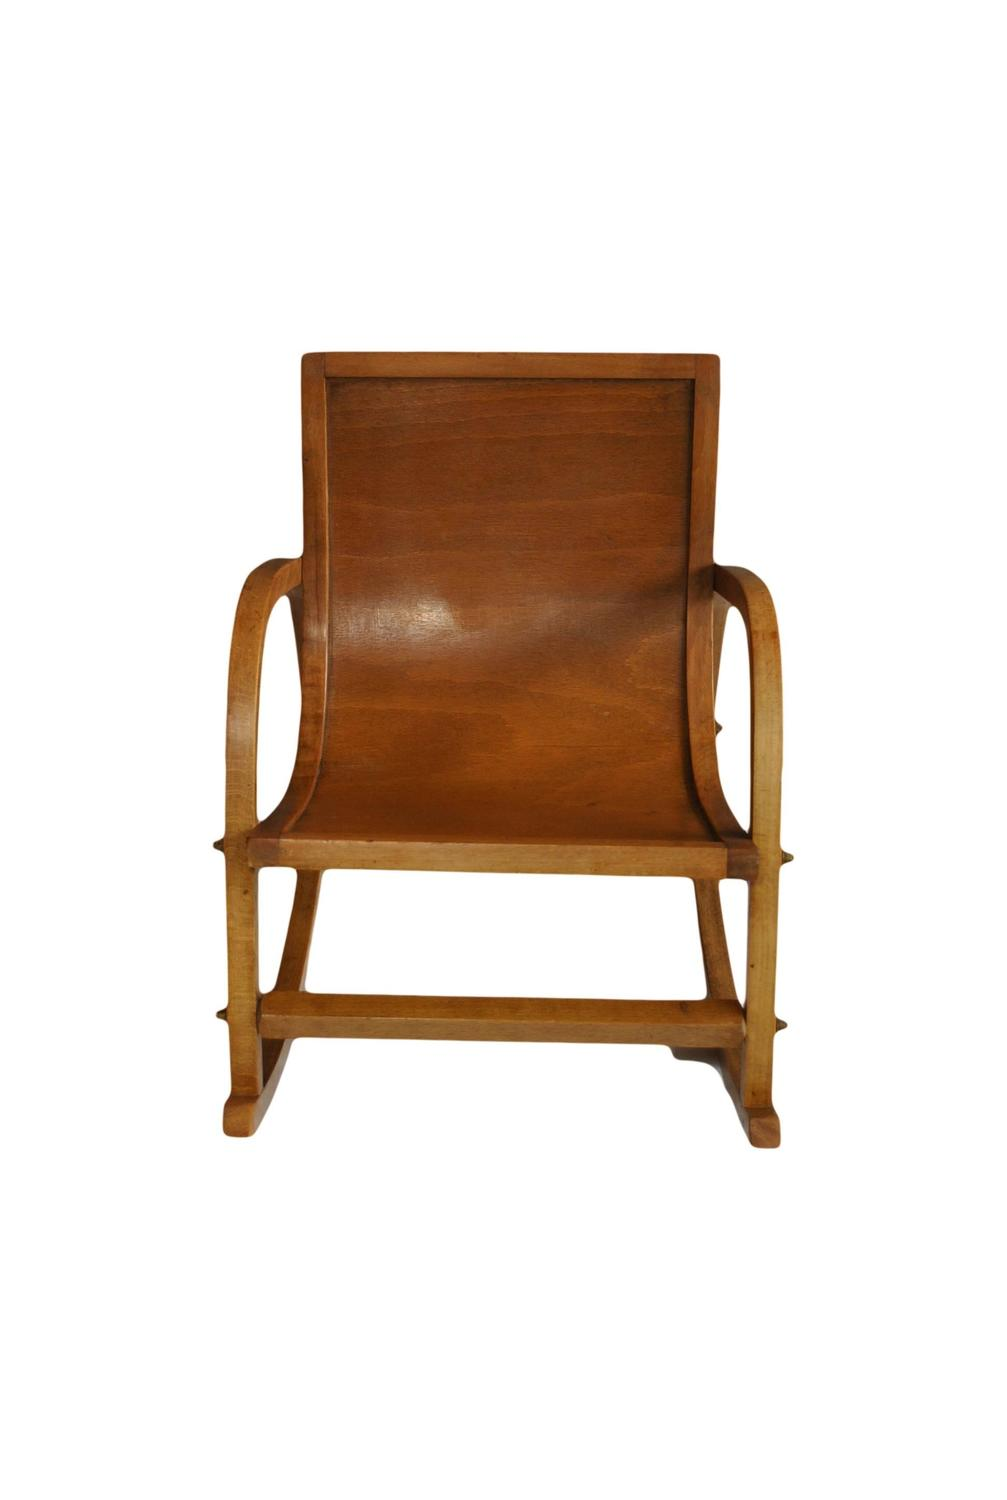 Mid-Century Childs Rocking Chair For Sale at 1stdibs